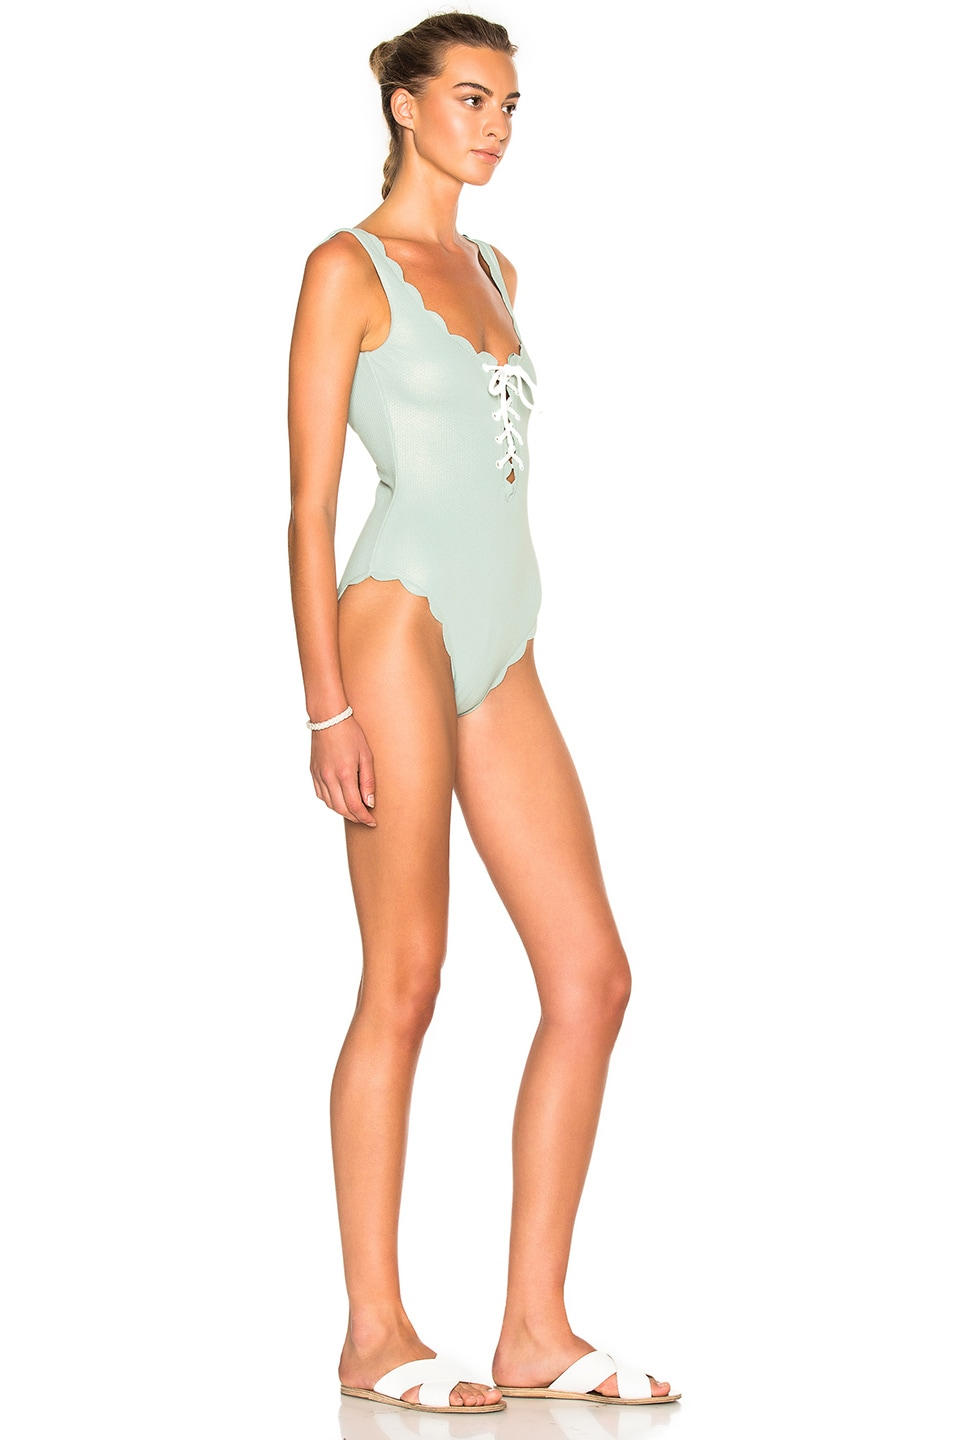 15791cd0485 Image 3 of Marysia Swim FWRD Exclusive Palm Springs Lace Up Swimsuit in  Pale Blue